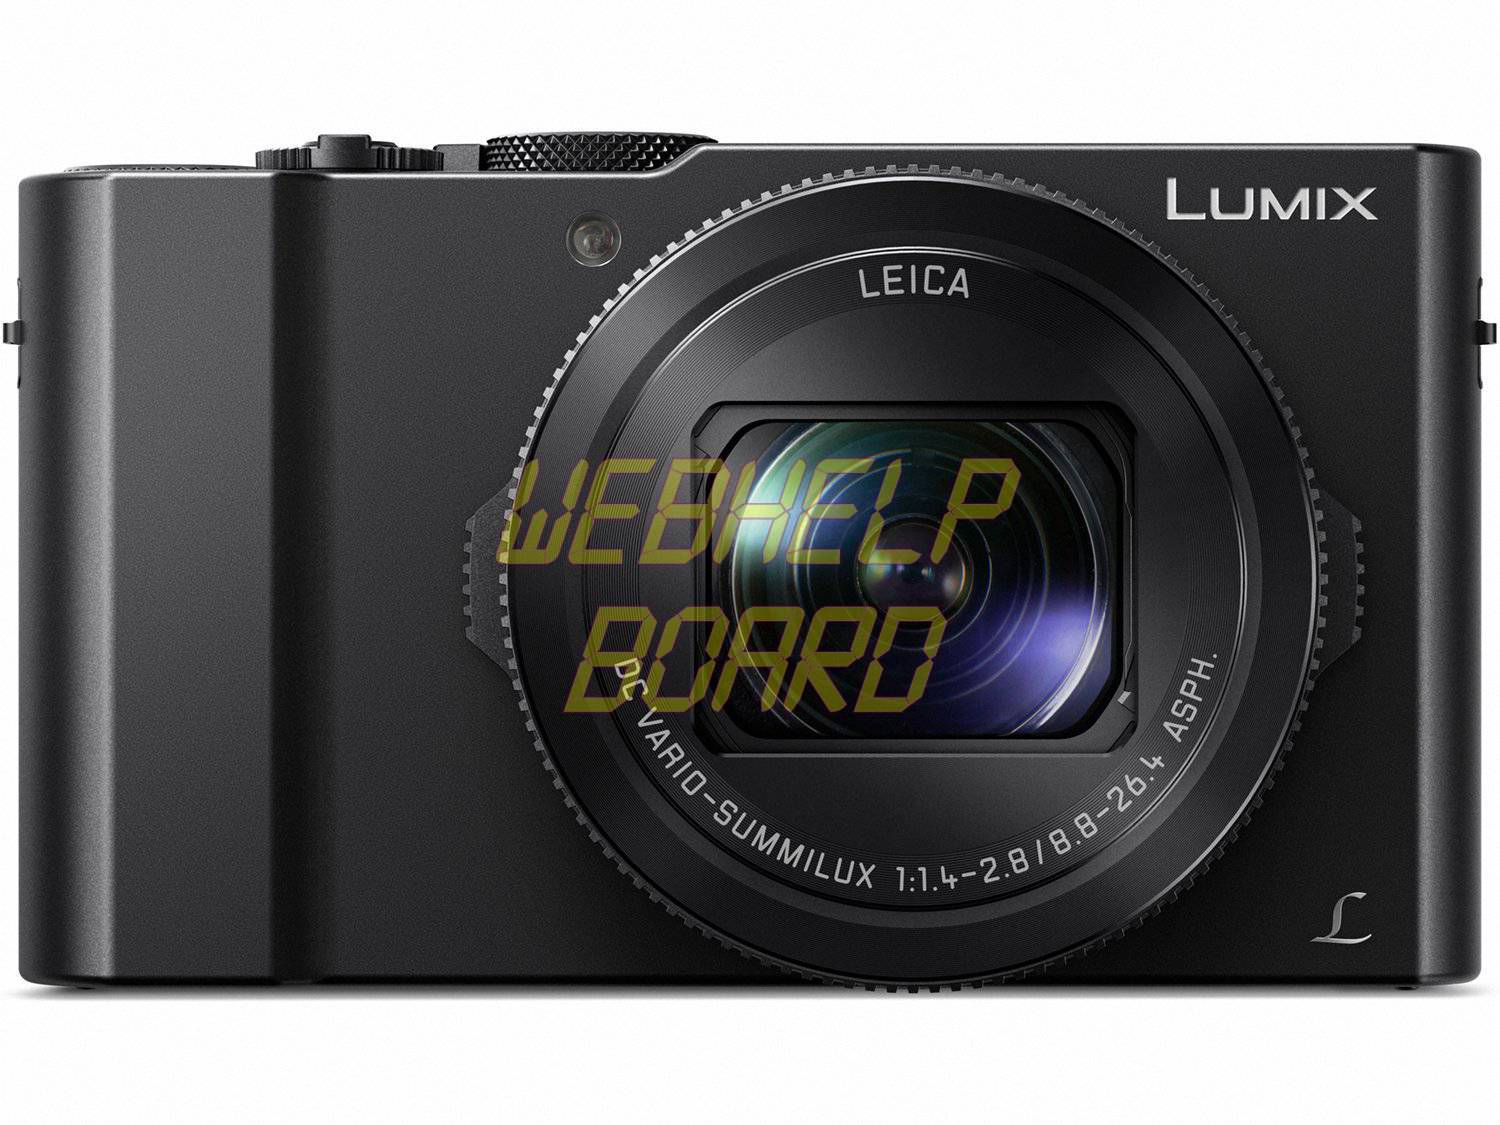 Panasonic LUMIX DMC-LX 10K